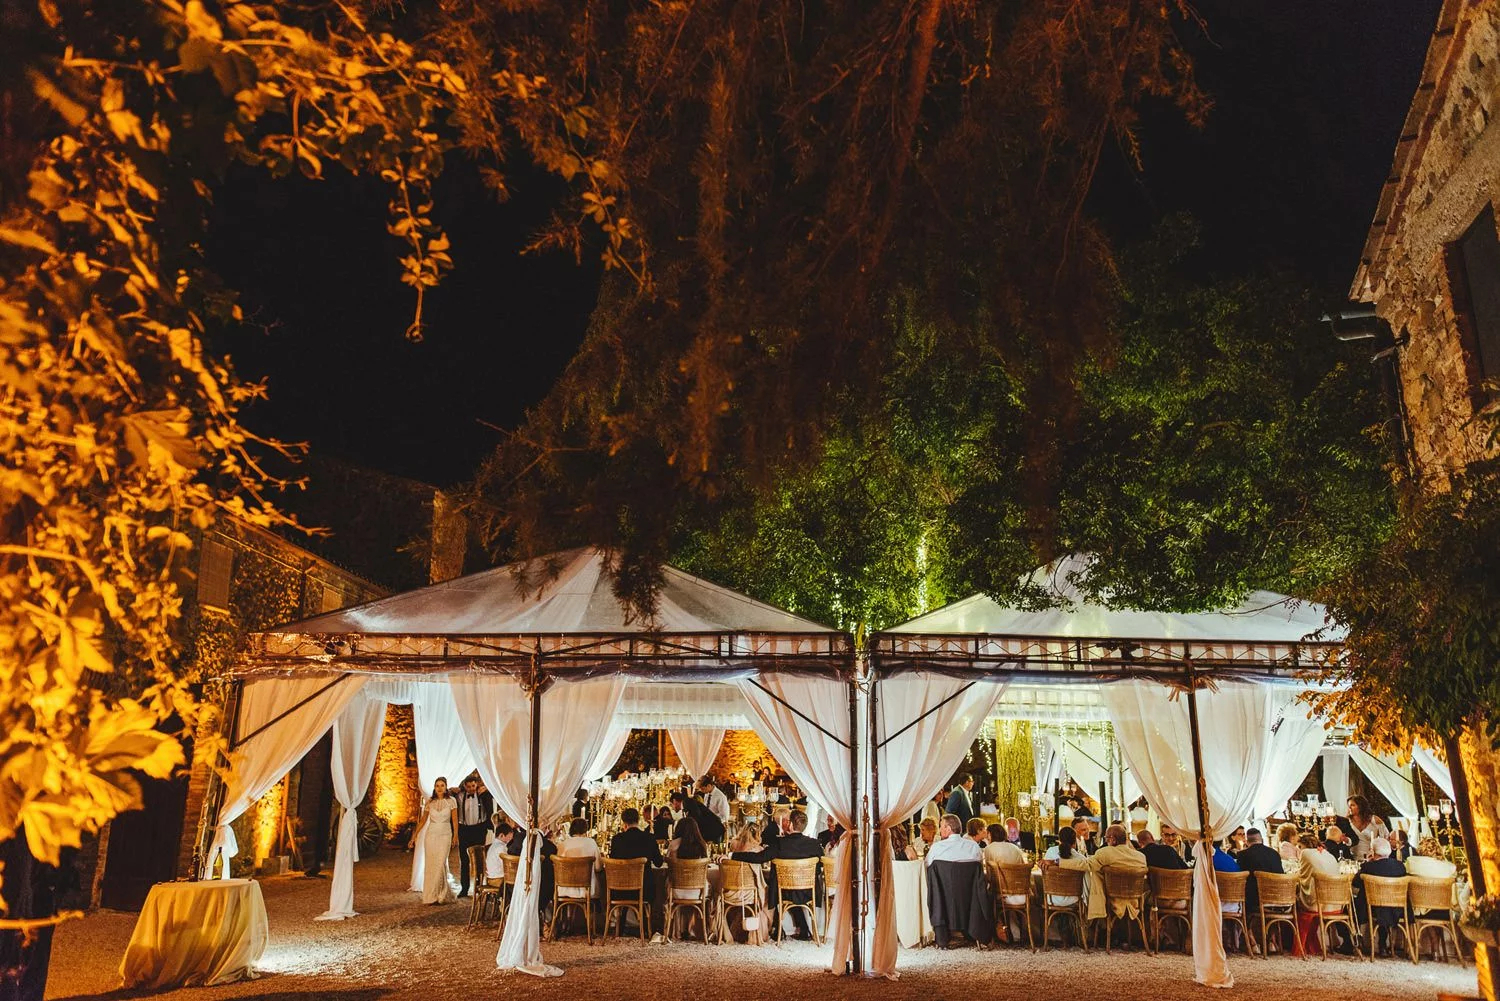 An outdoor wedding reception under decorated gazebos at Borgo Di Castelvecchio in Tuscany, Italy.